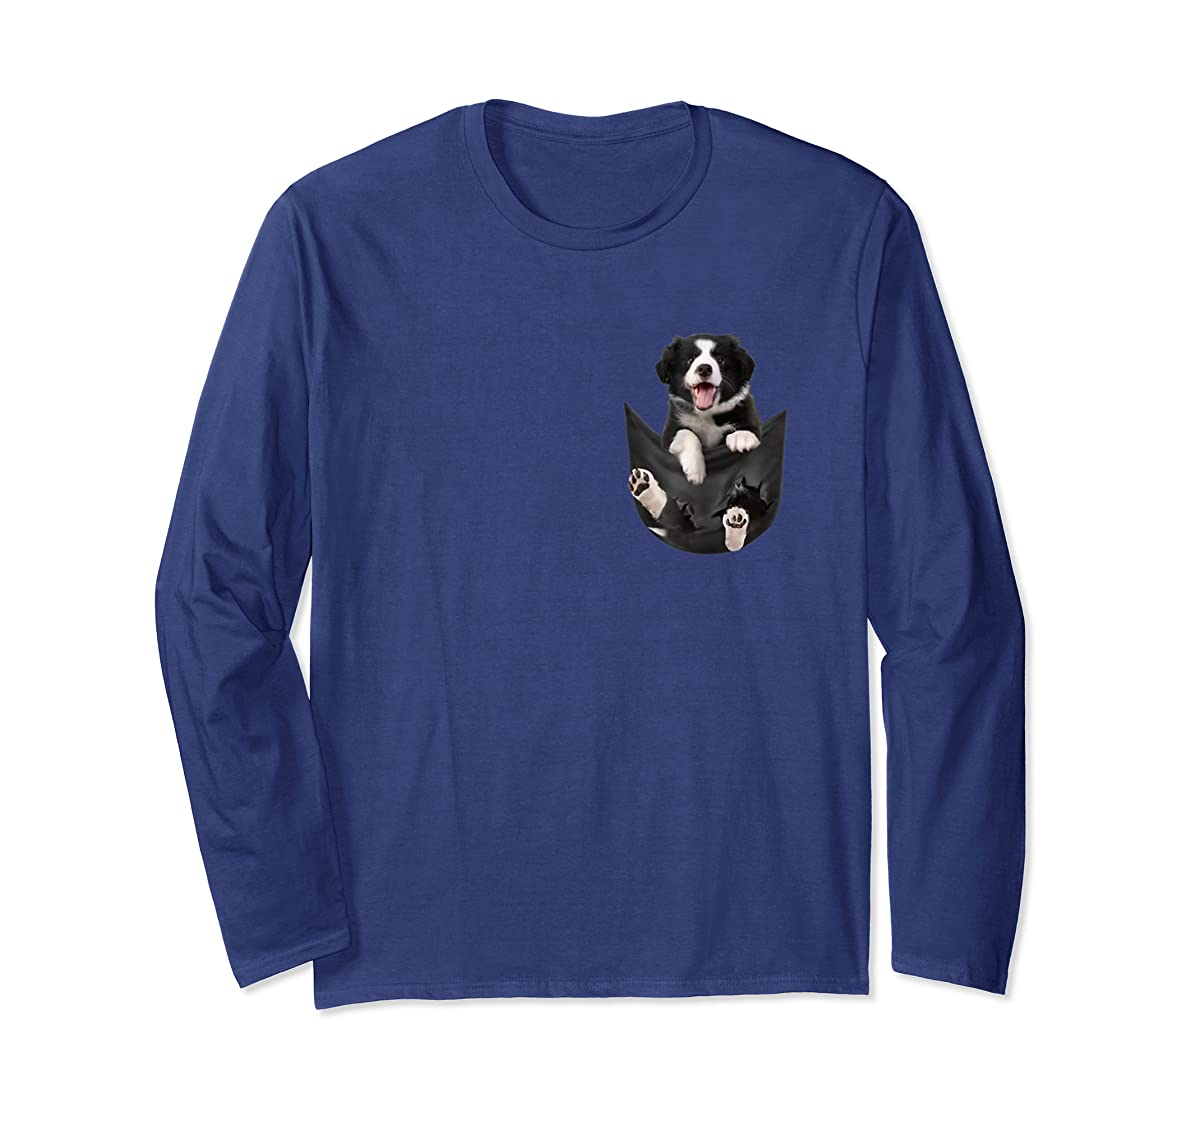 Border Collies Inside In Pocket Dog Lover T shirt Funny Cute-Long Sleeve-Navy